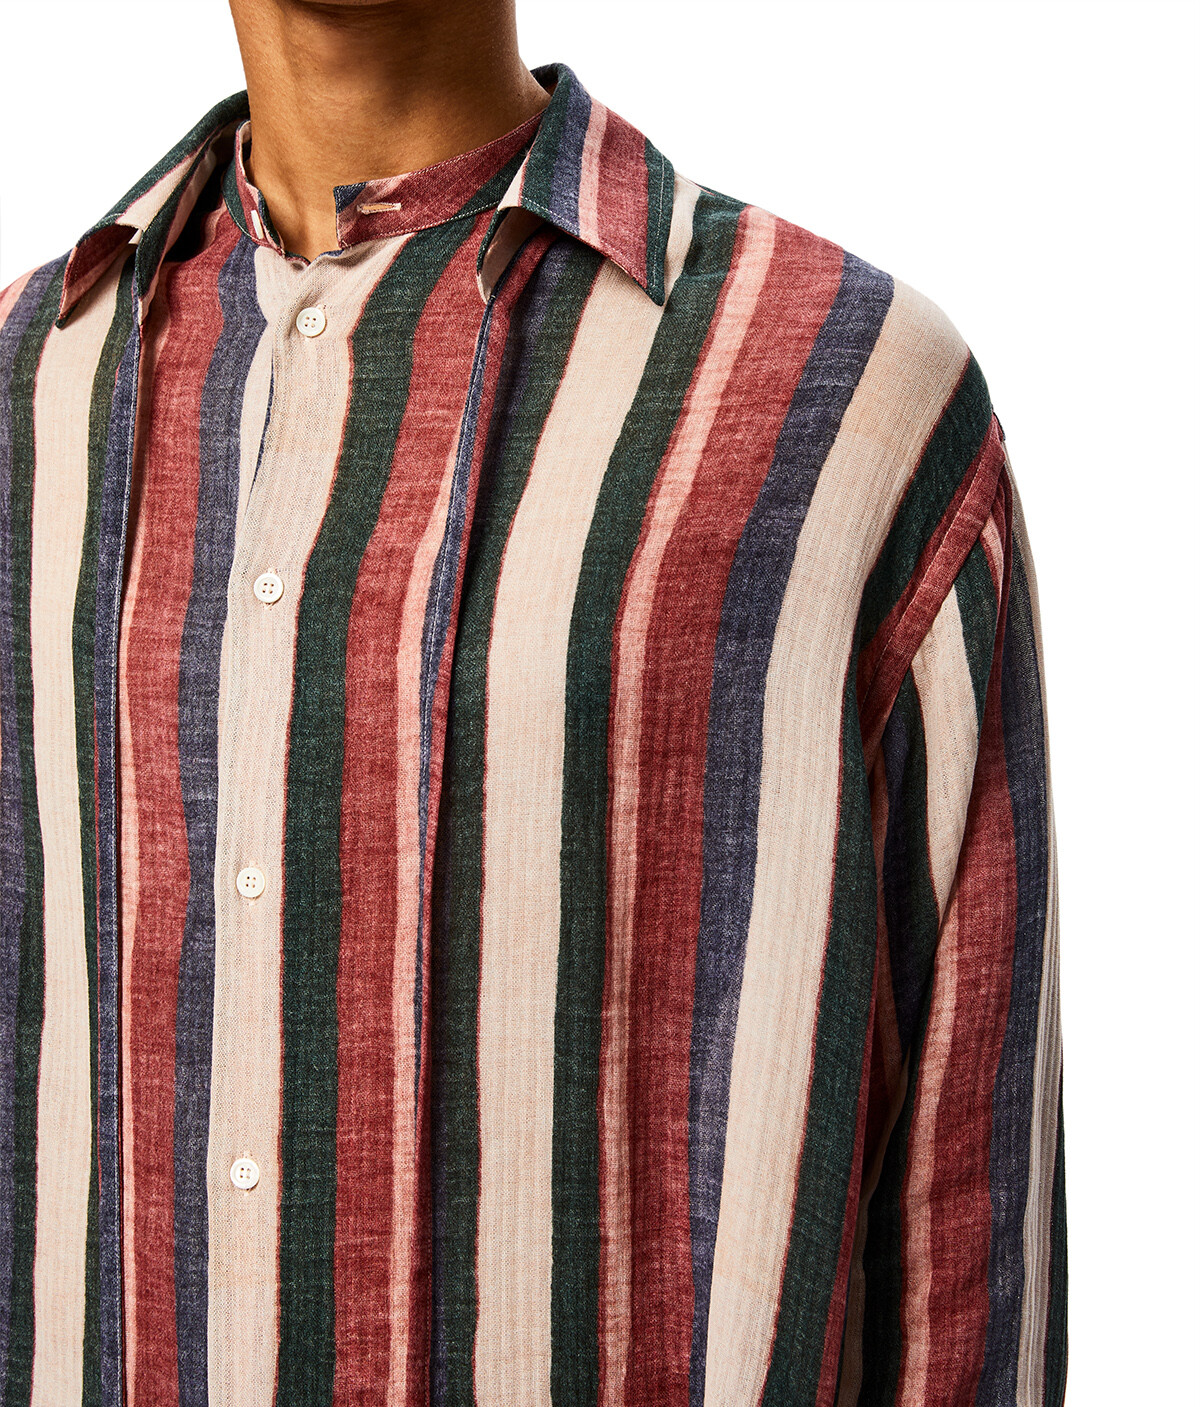 LOEWE Detachable Collar Stripe Shirt Pink/Strawberry/Blue front